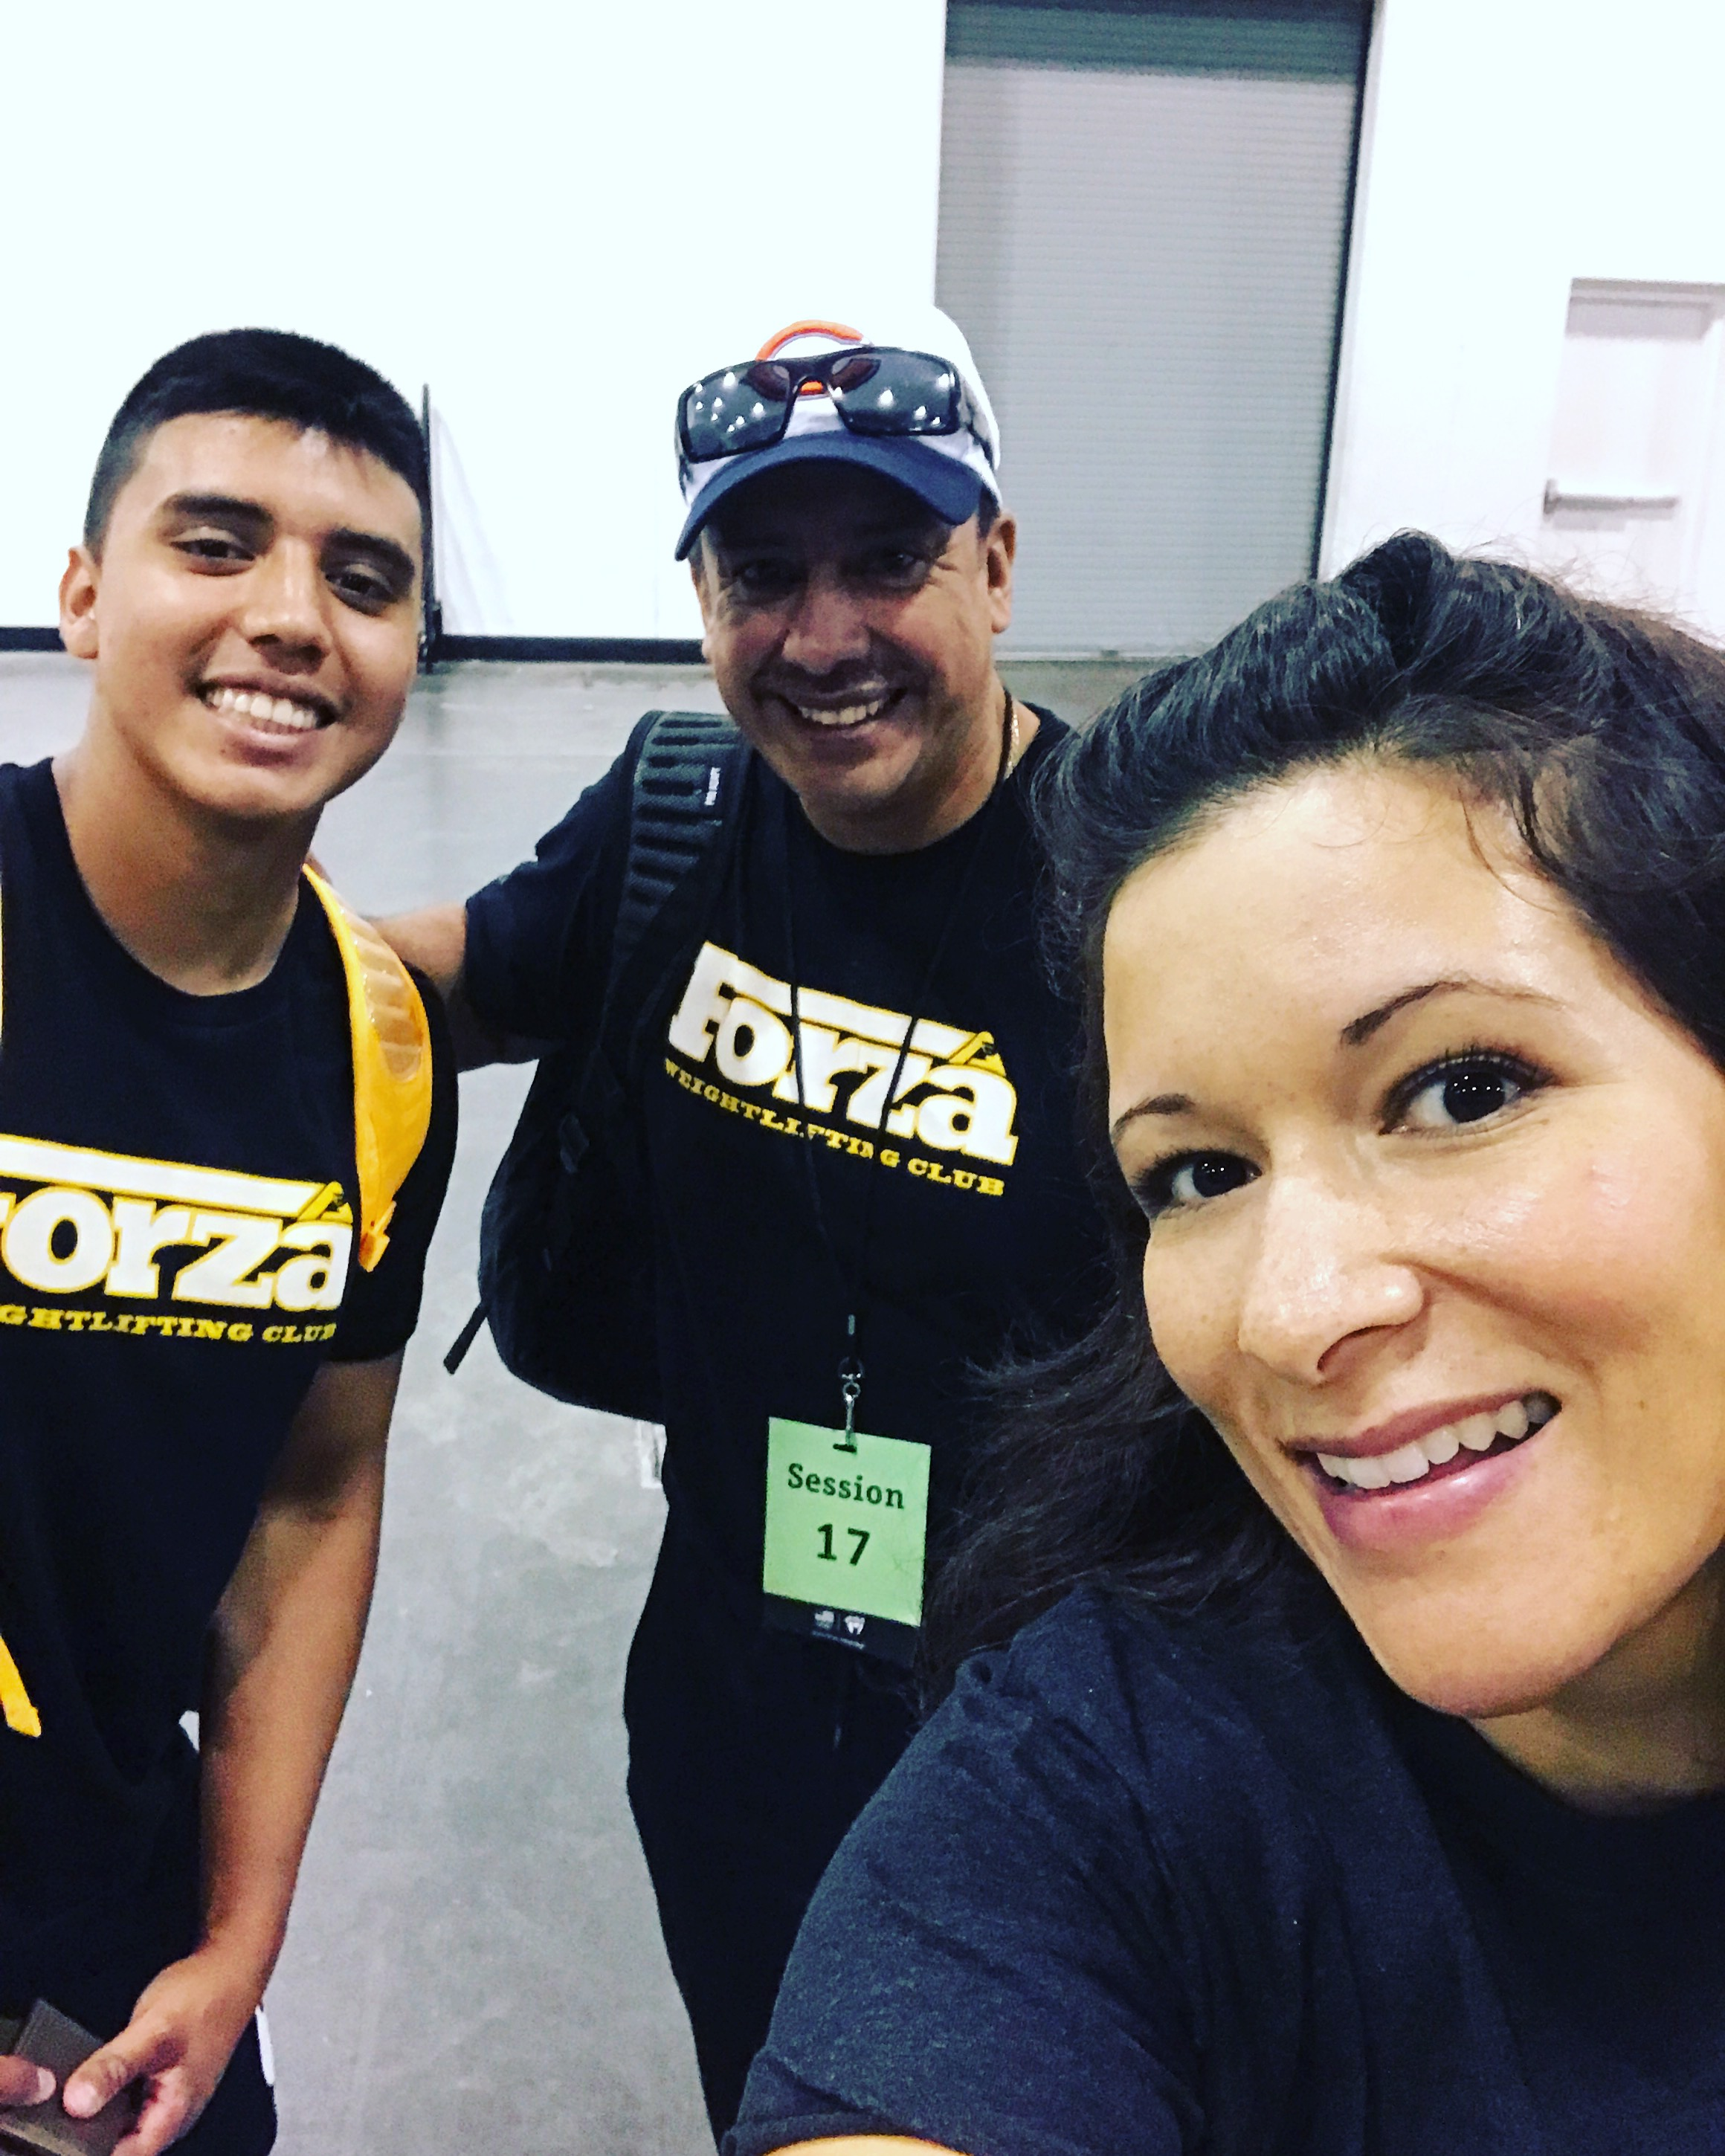 forza-rey-father-son-everyday-lifters-selfie.jpg